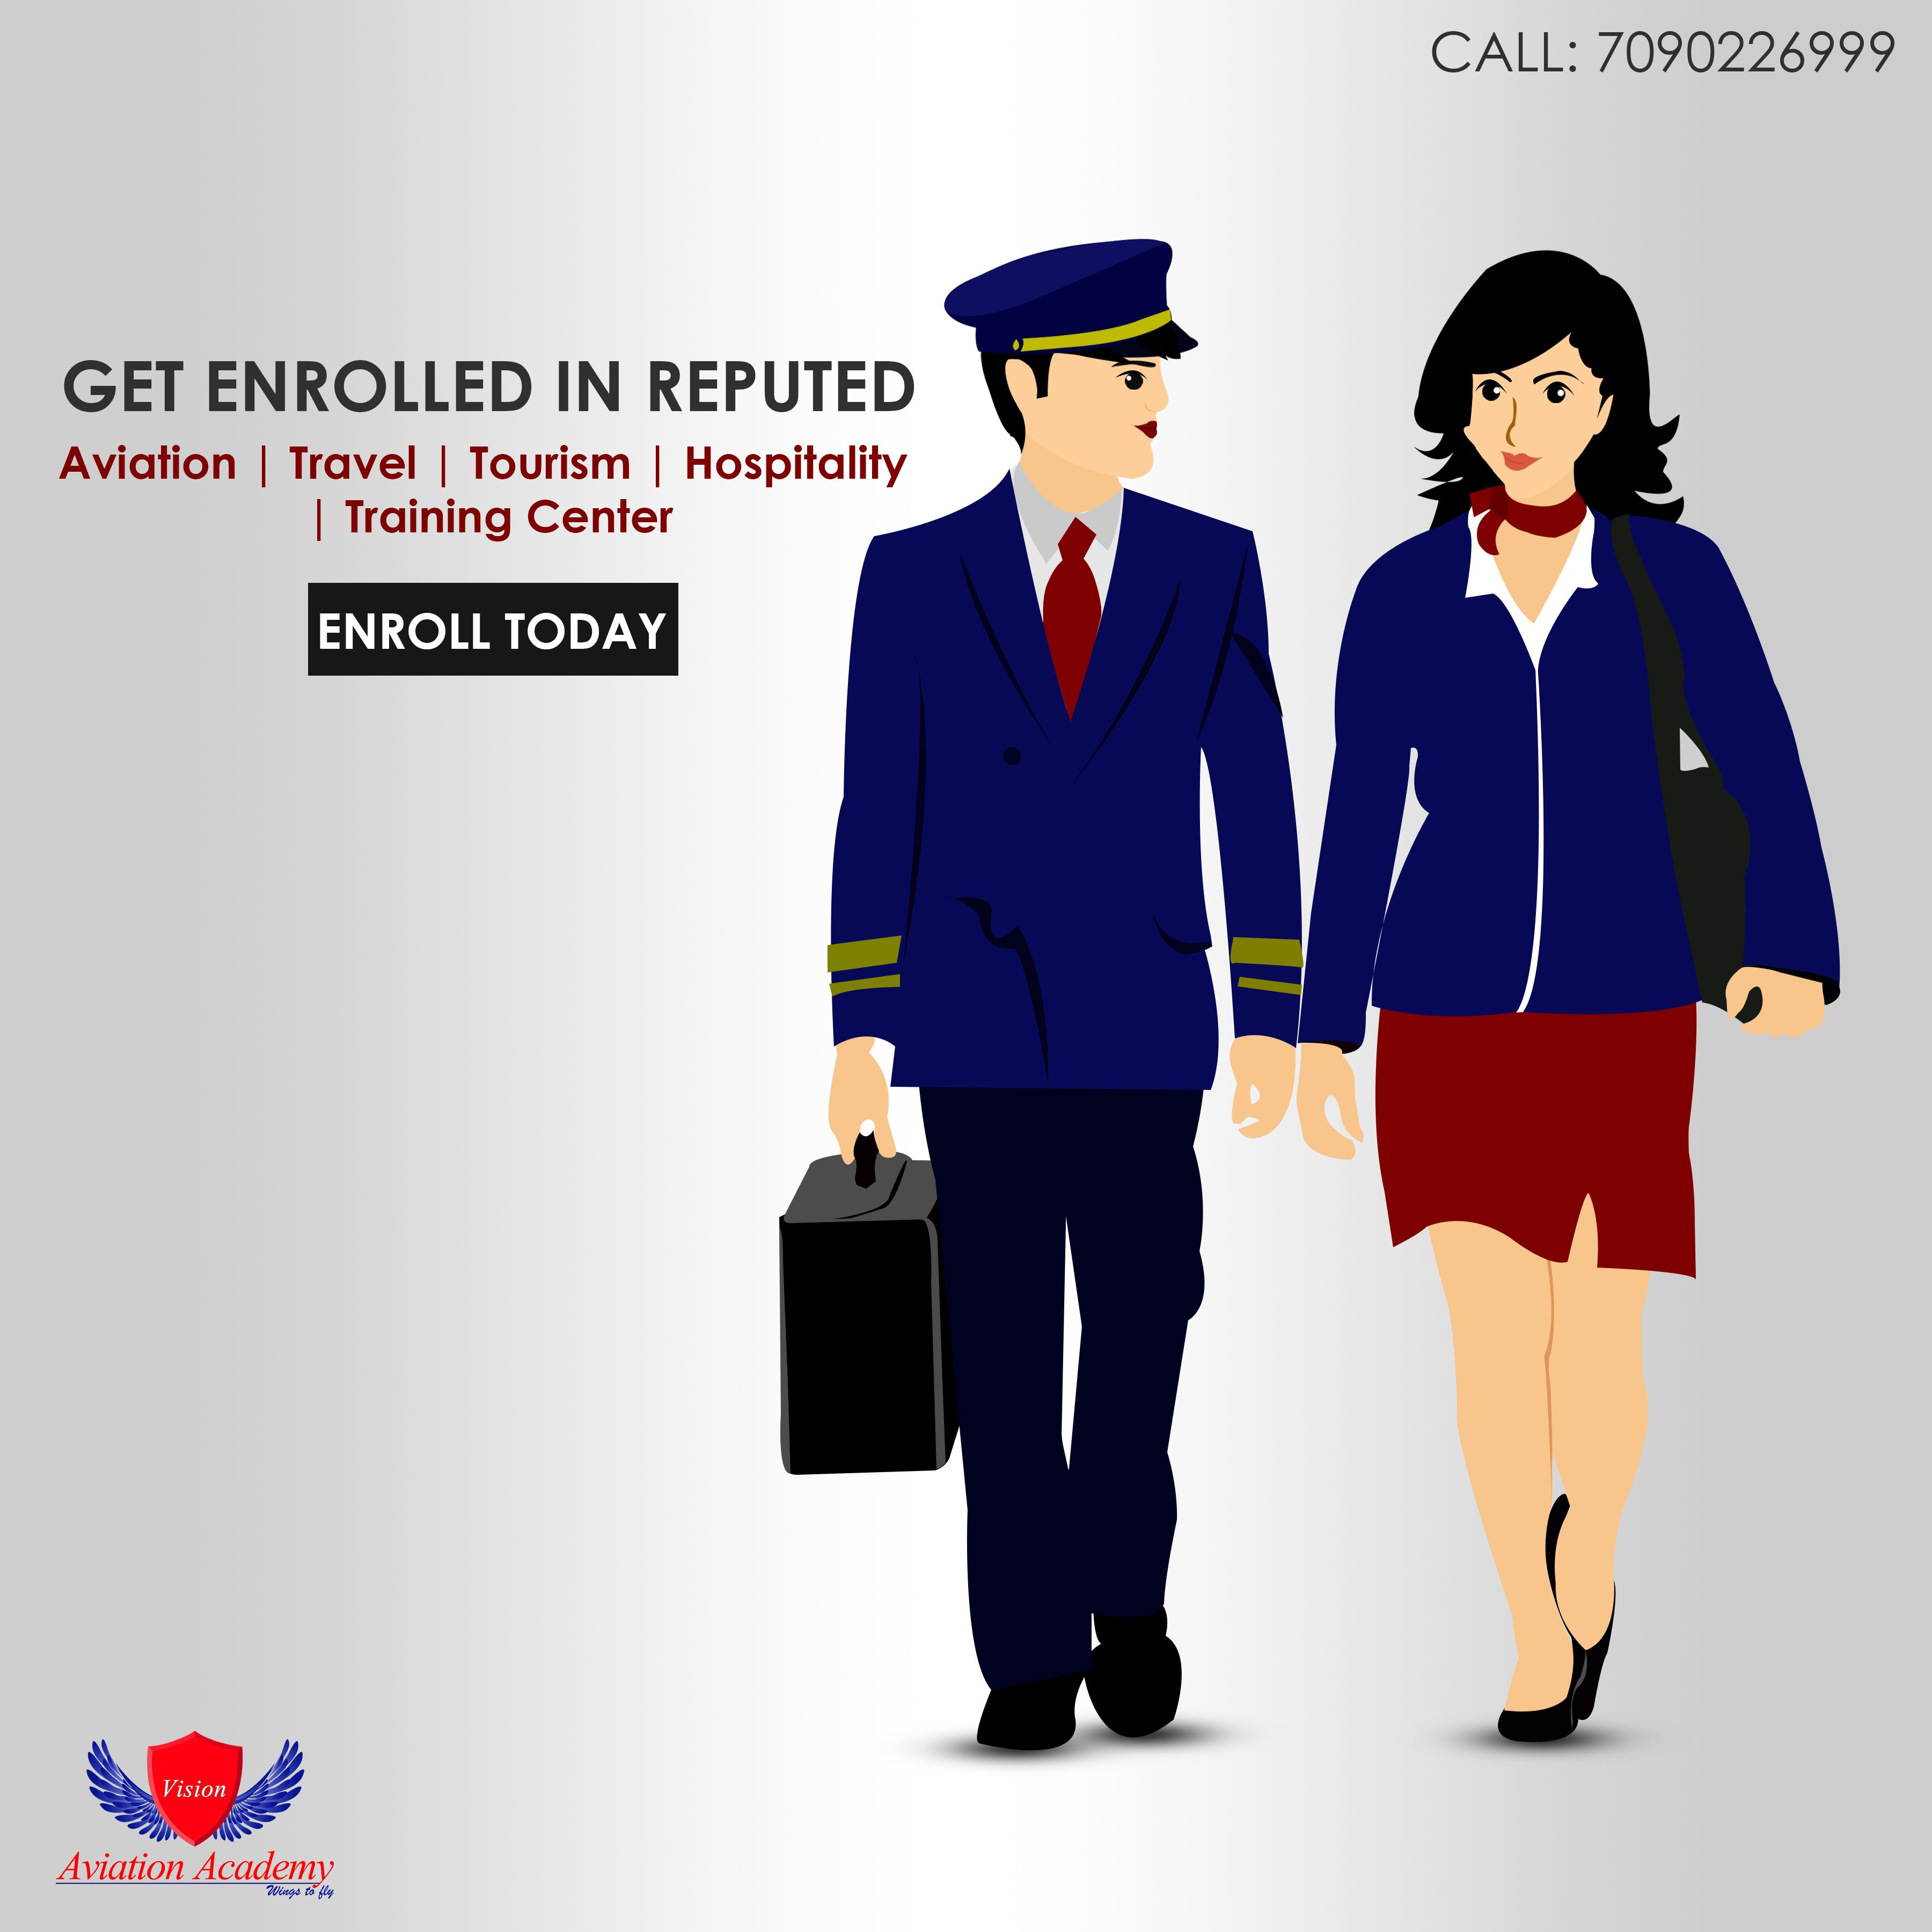 get enrolled in reputed aviation travel tourism hospitality get enrolled in reputed aviation travel tourism hospitality training center 100% job